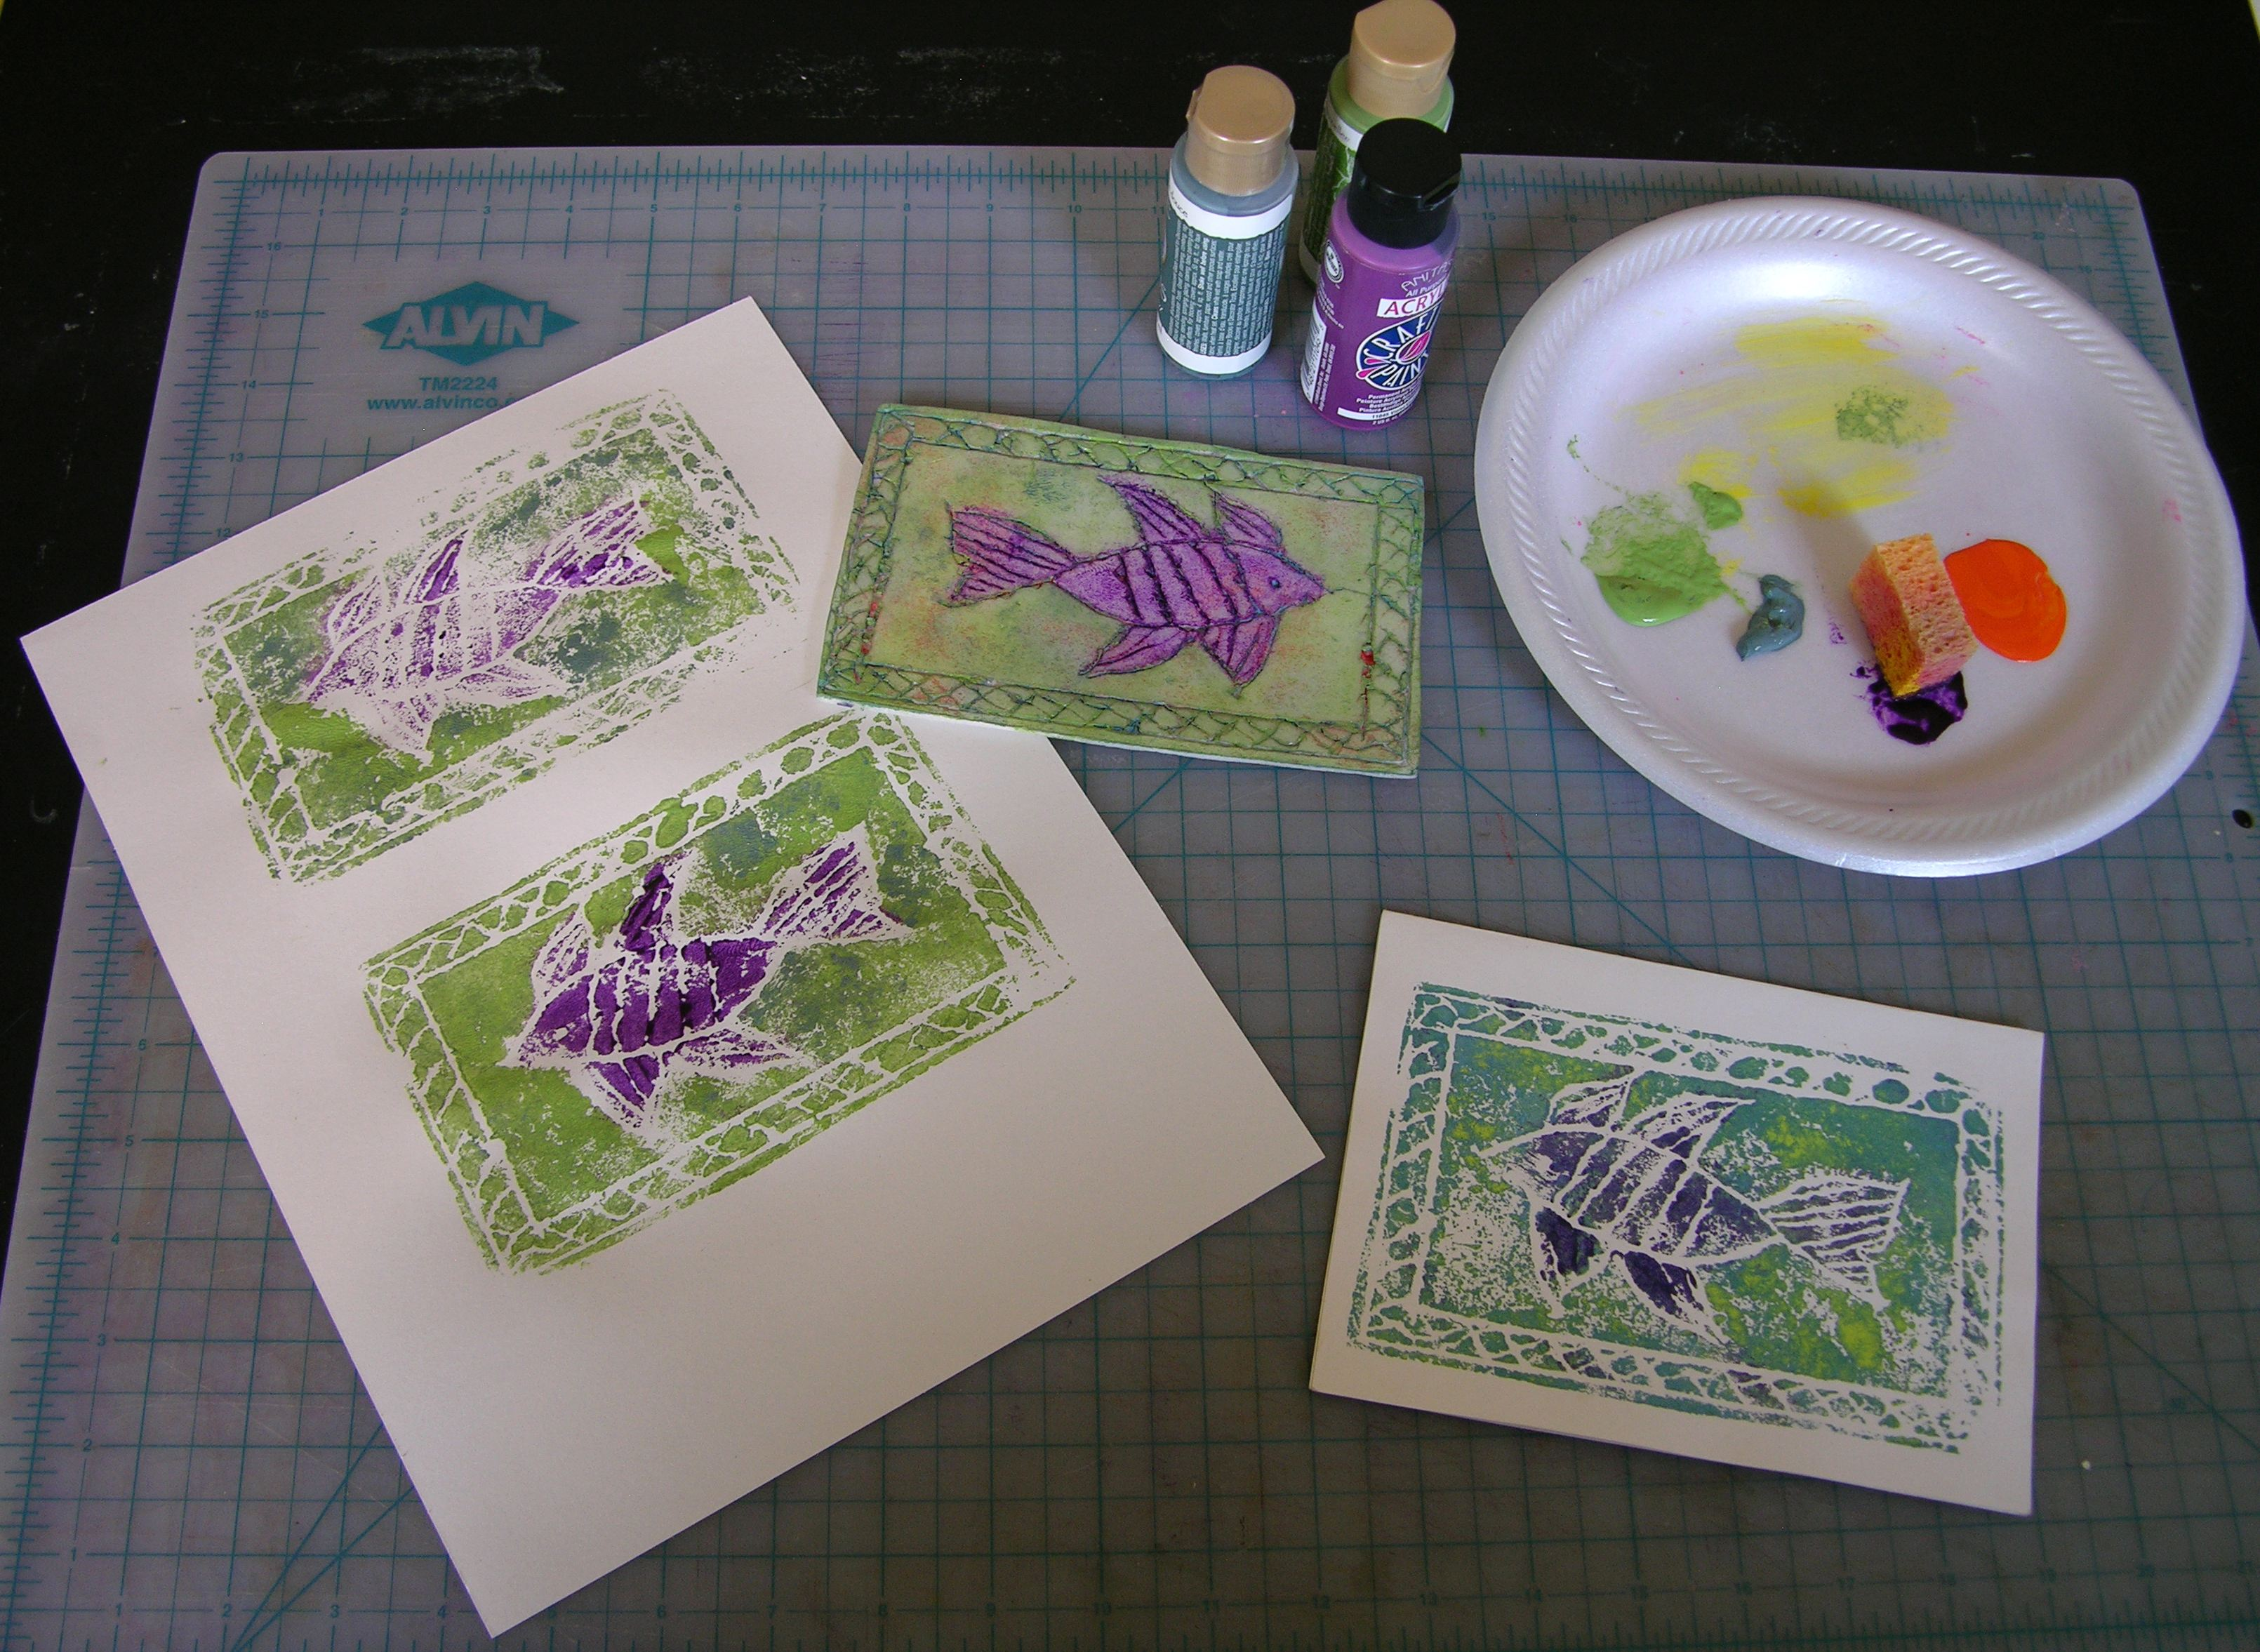 here are some of my trial runs on scrap paper